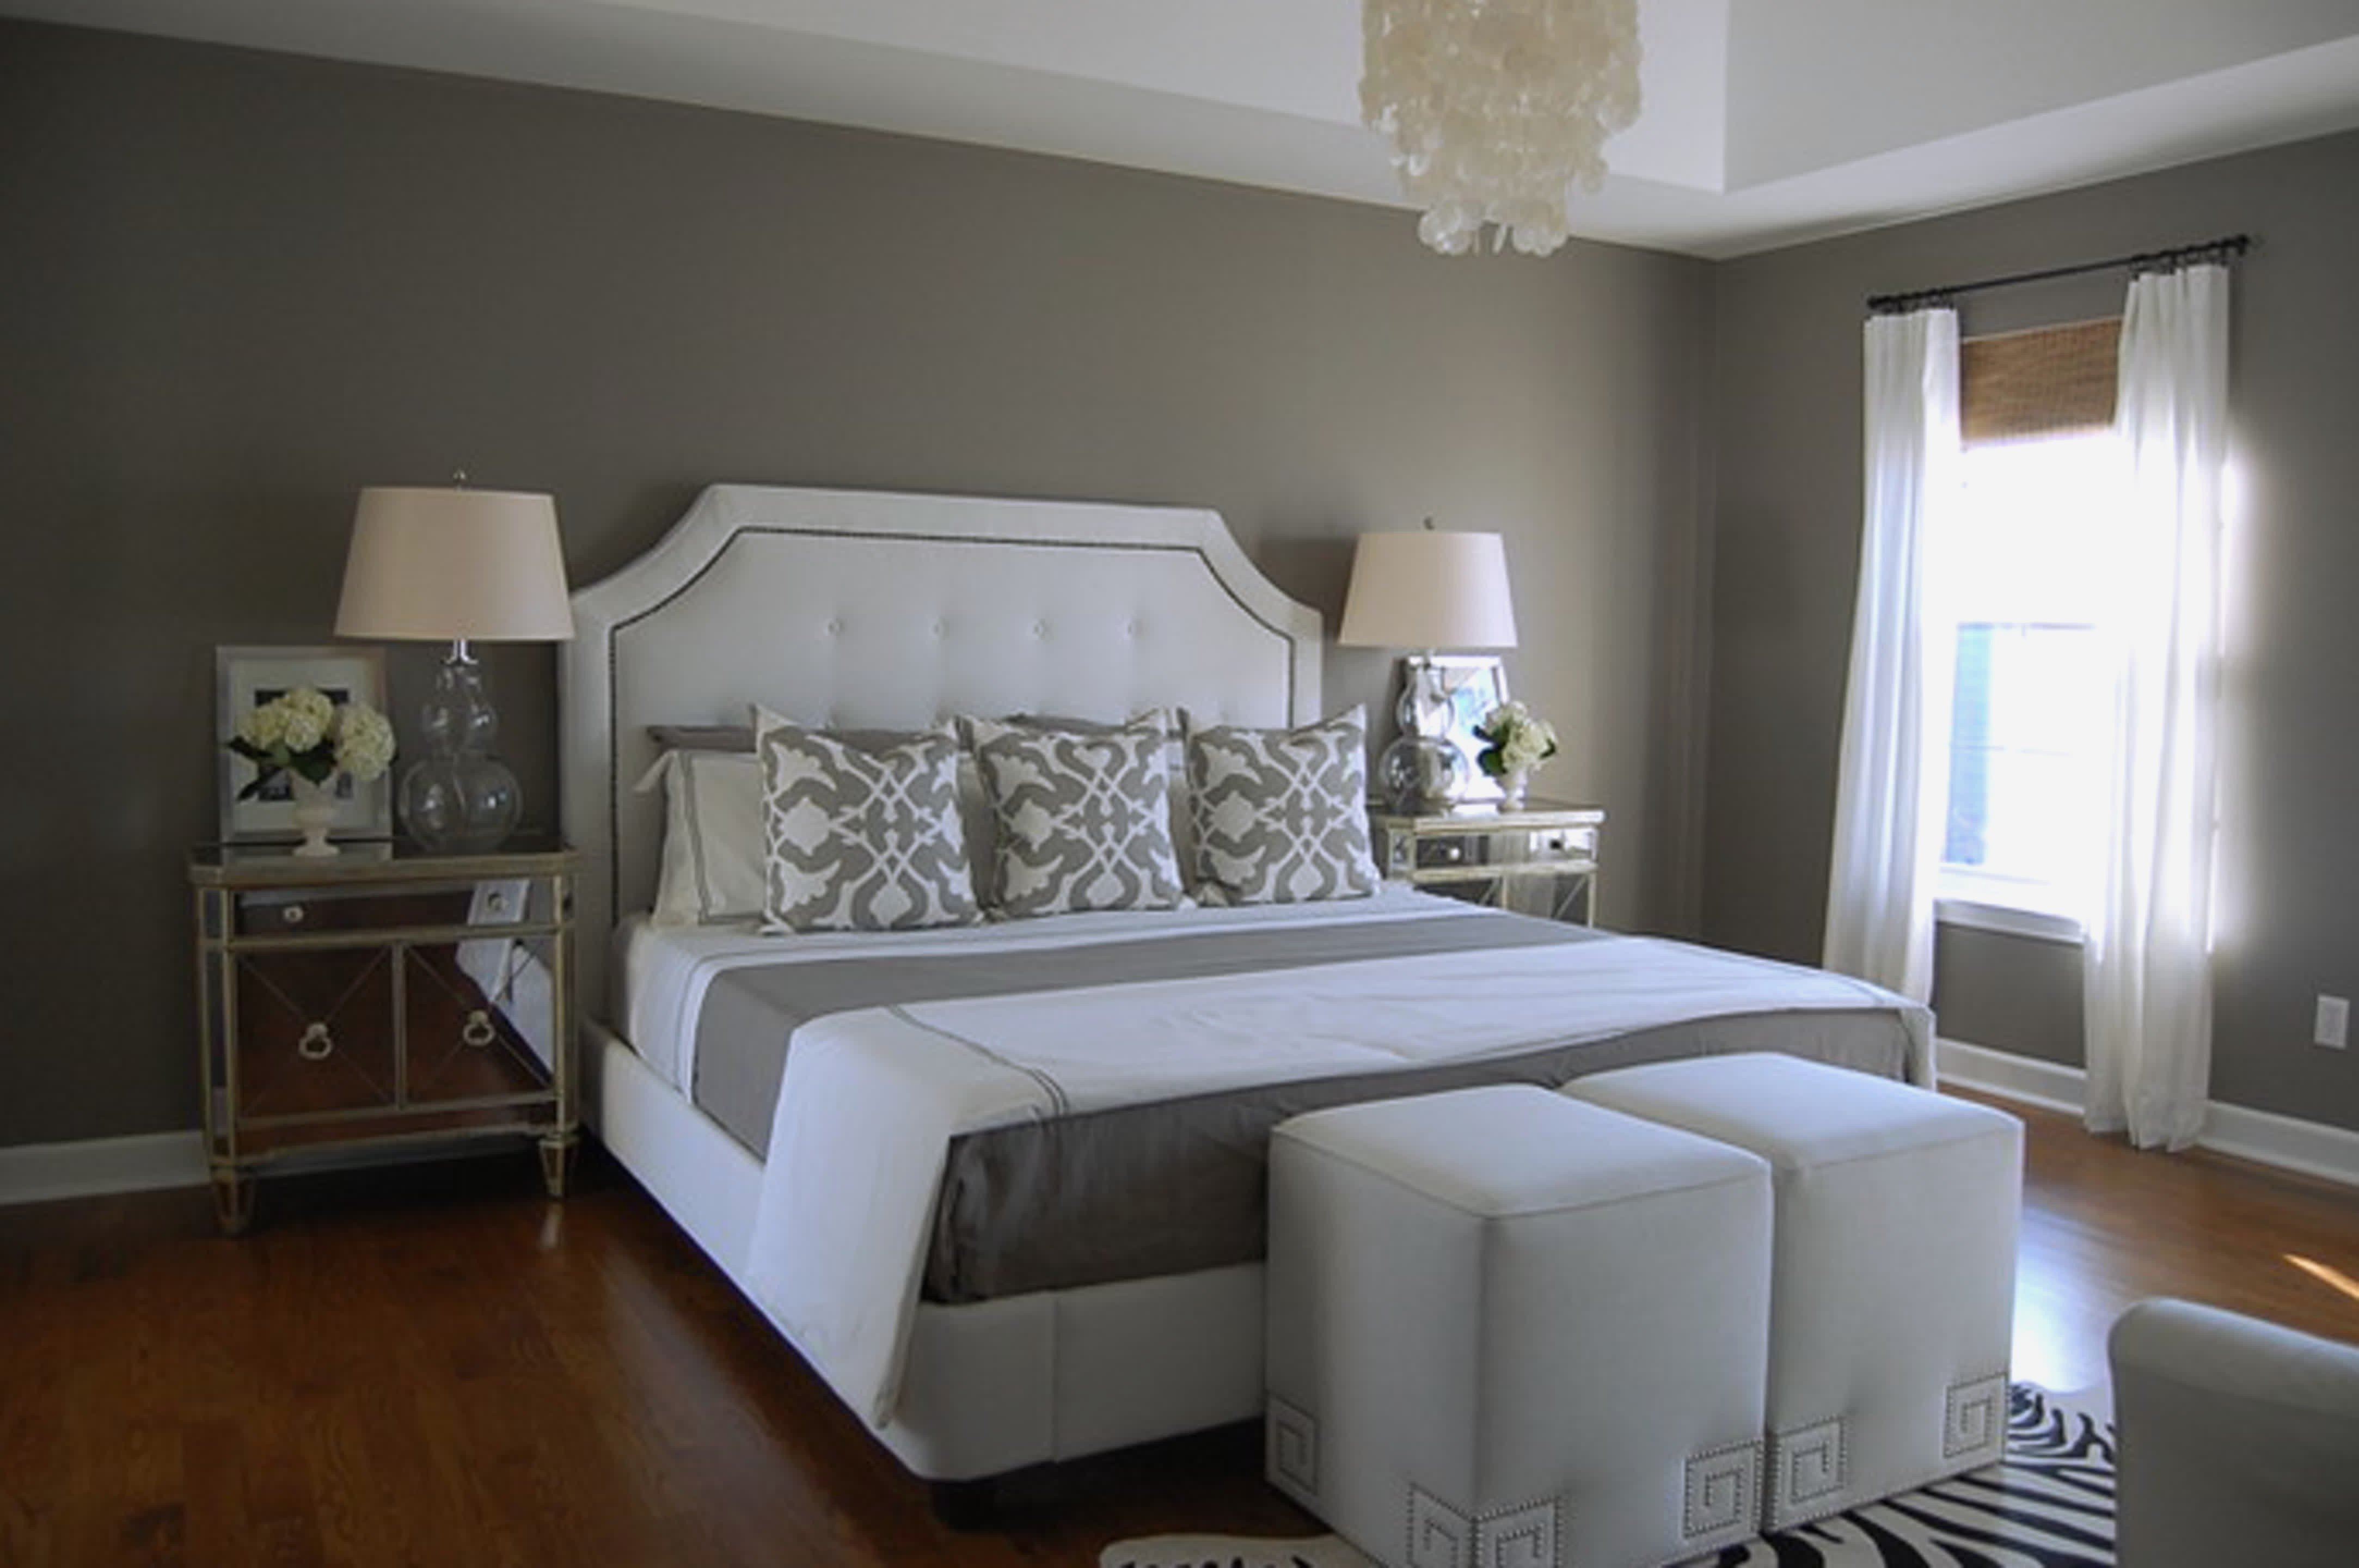 10 Amazing Master Bedroom Decorating Ideas On A Budget bedroom awesome master bedroom decorating ideas on a budget 2020